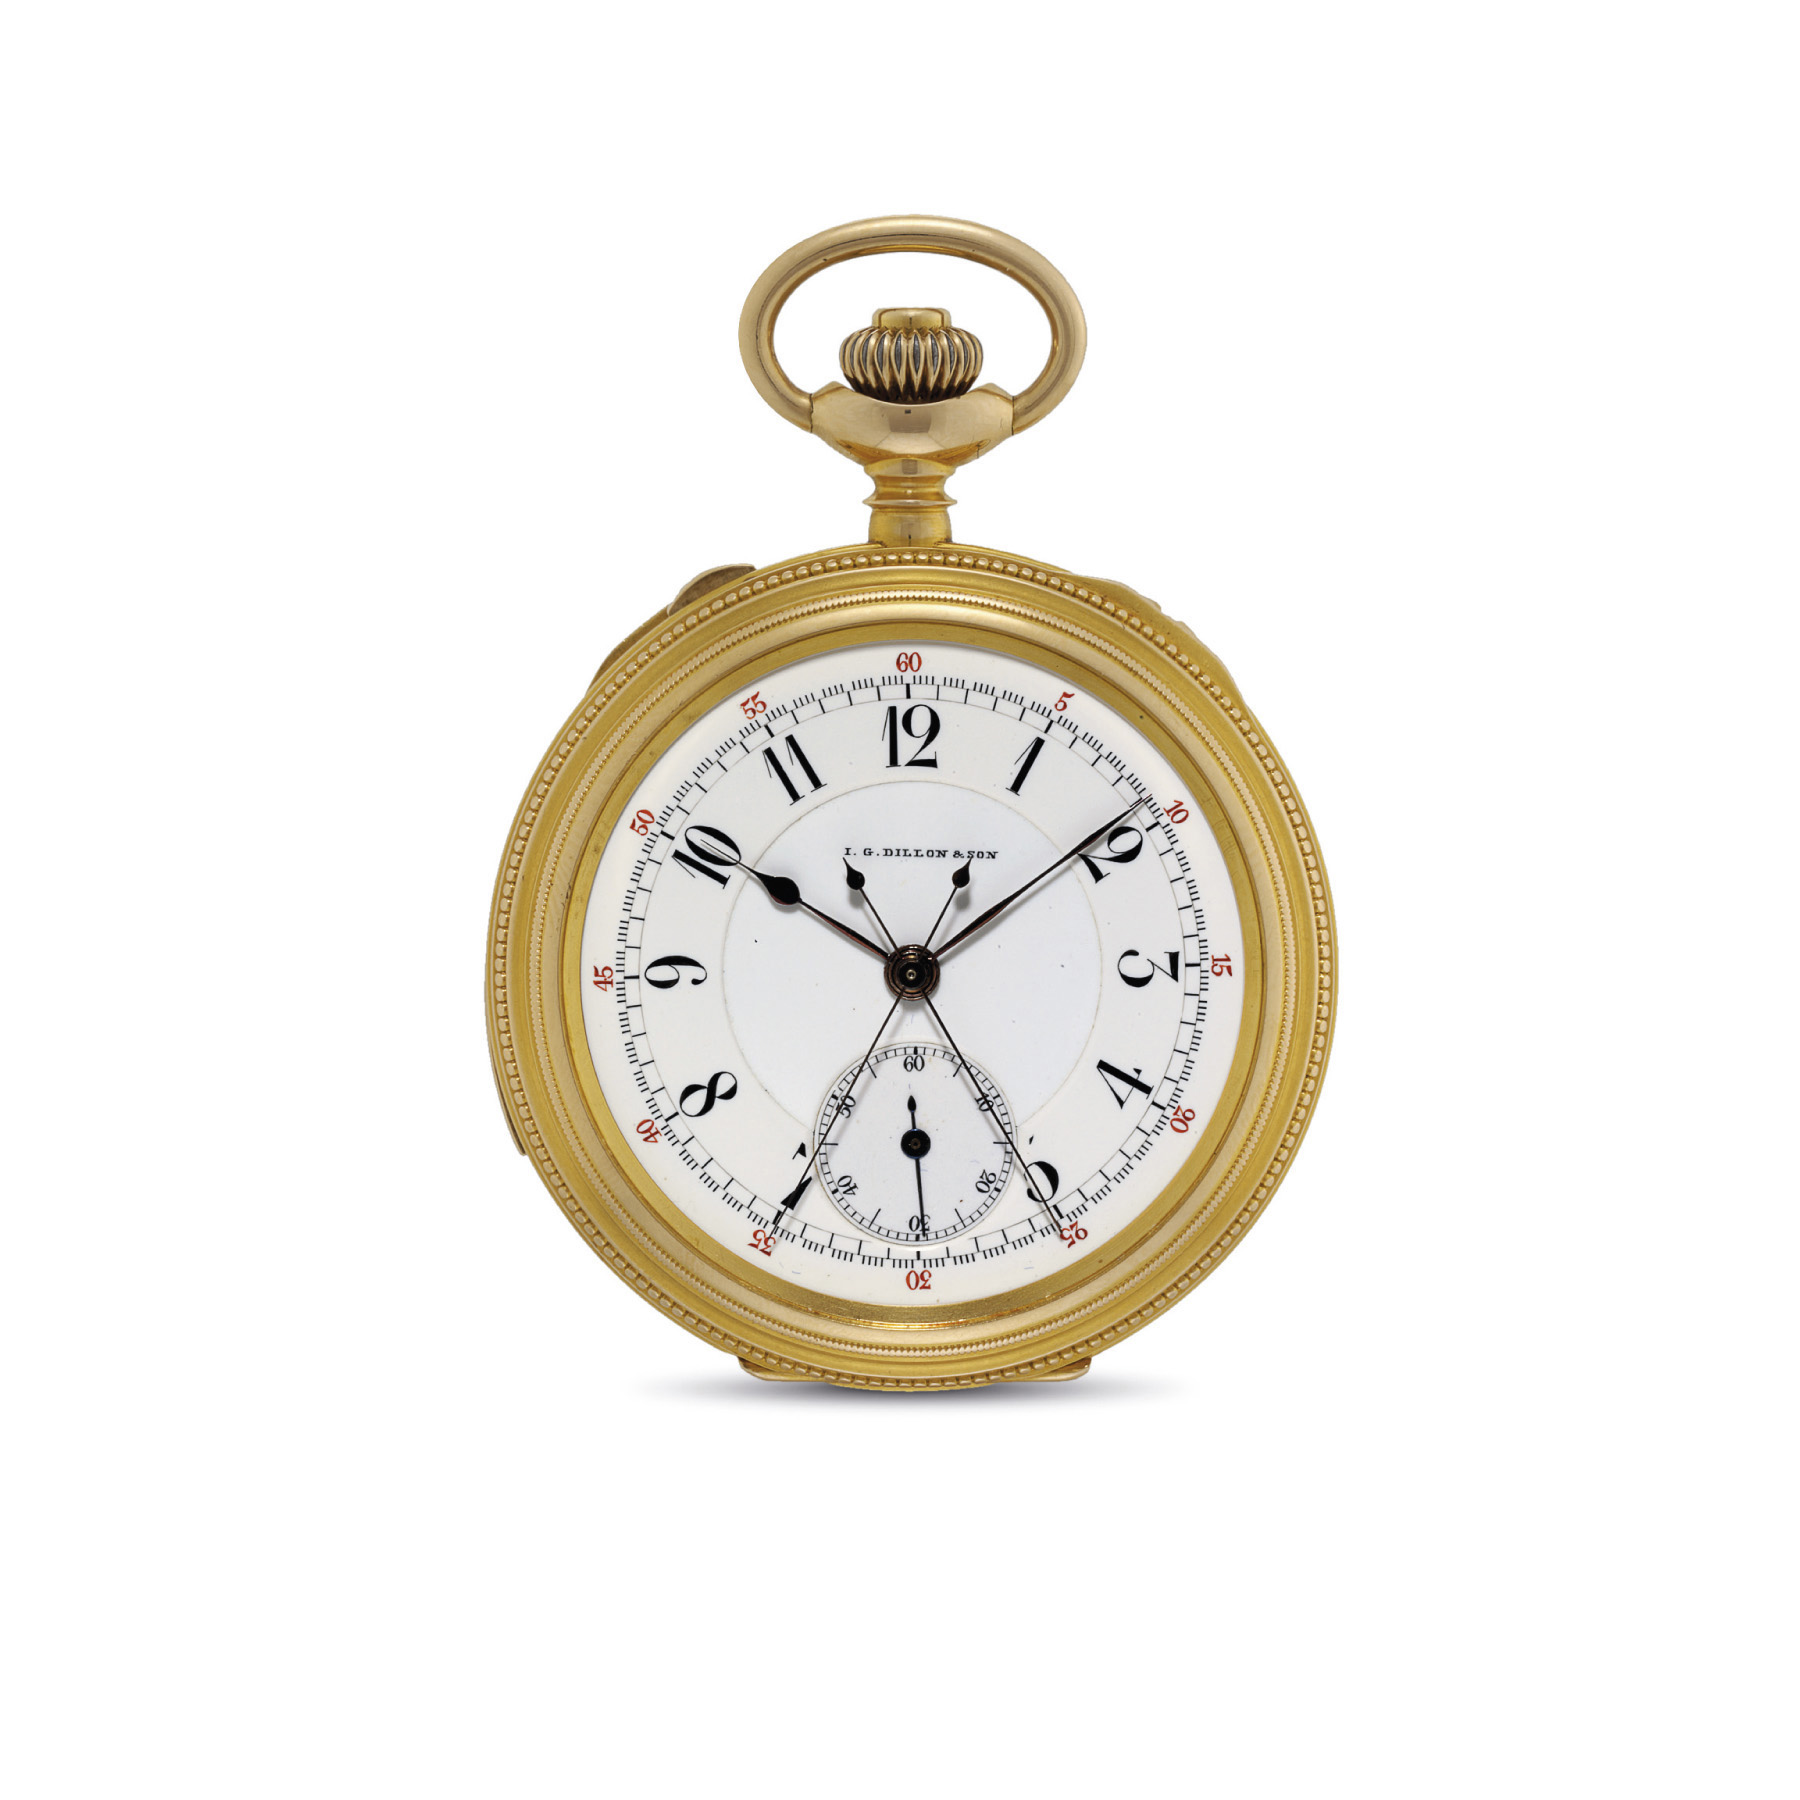 C.H. MEYLAN. A 14K GOLD OPENFACE MINUTE REPEATING SPLIT SECOND CHRONOGRAPH KEYLESS LEVER WATCH WITH ASSOCIATED GOLD CHAIN